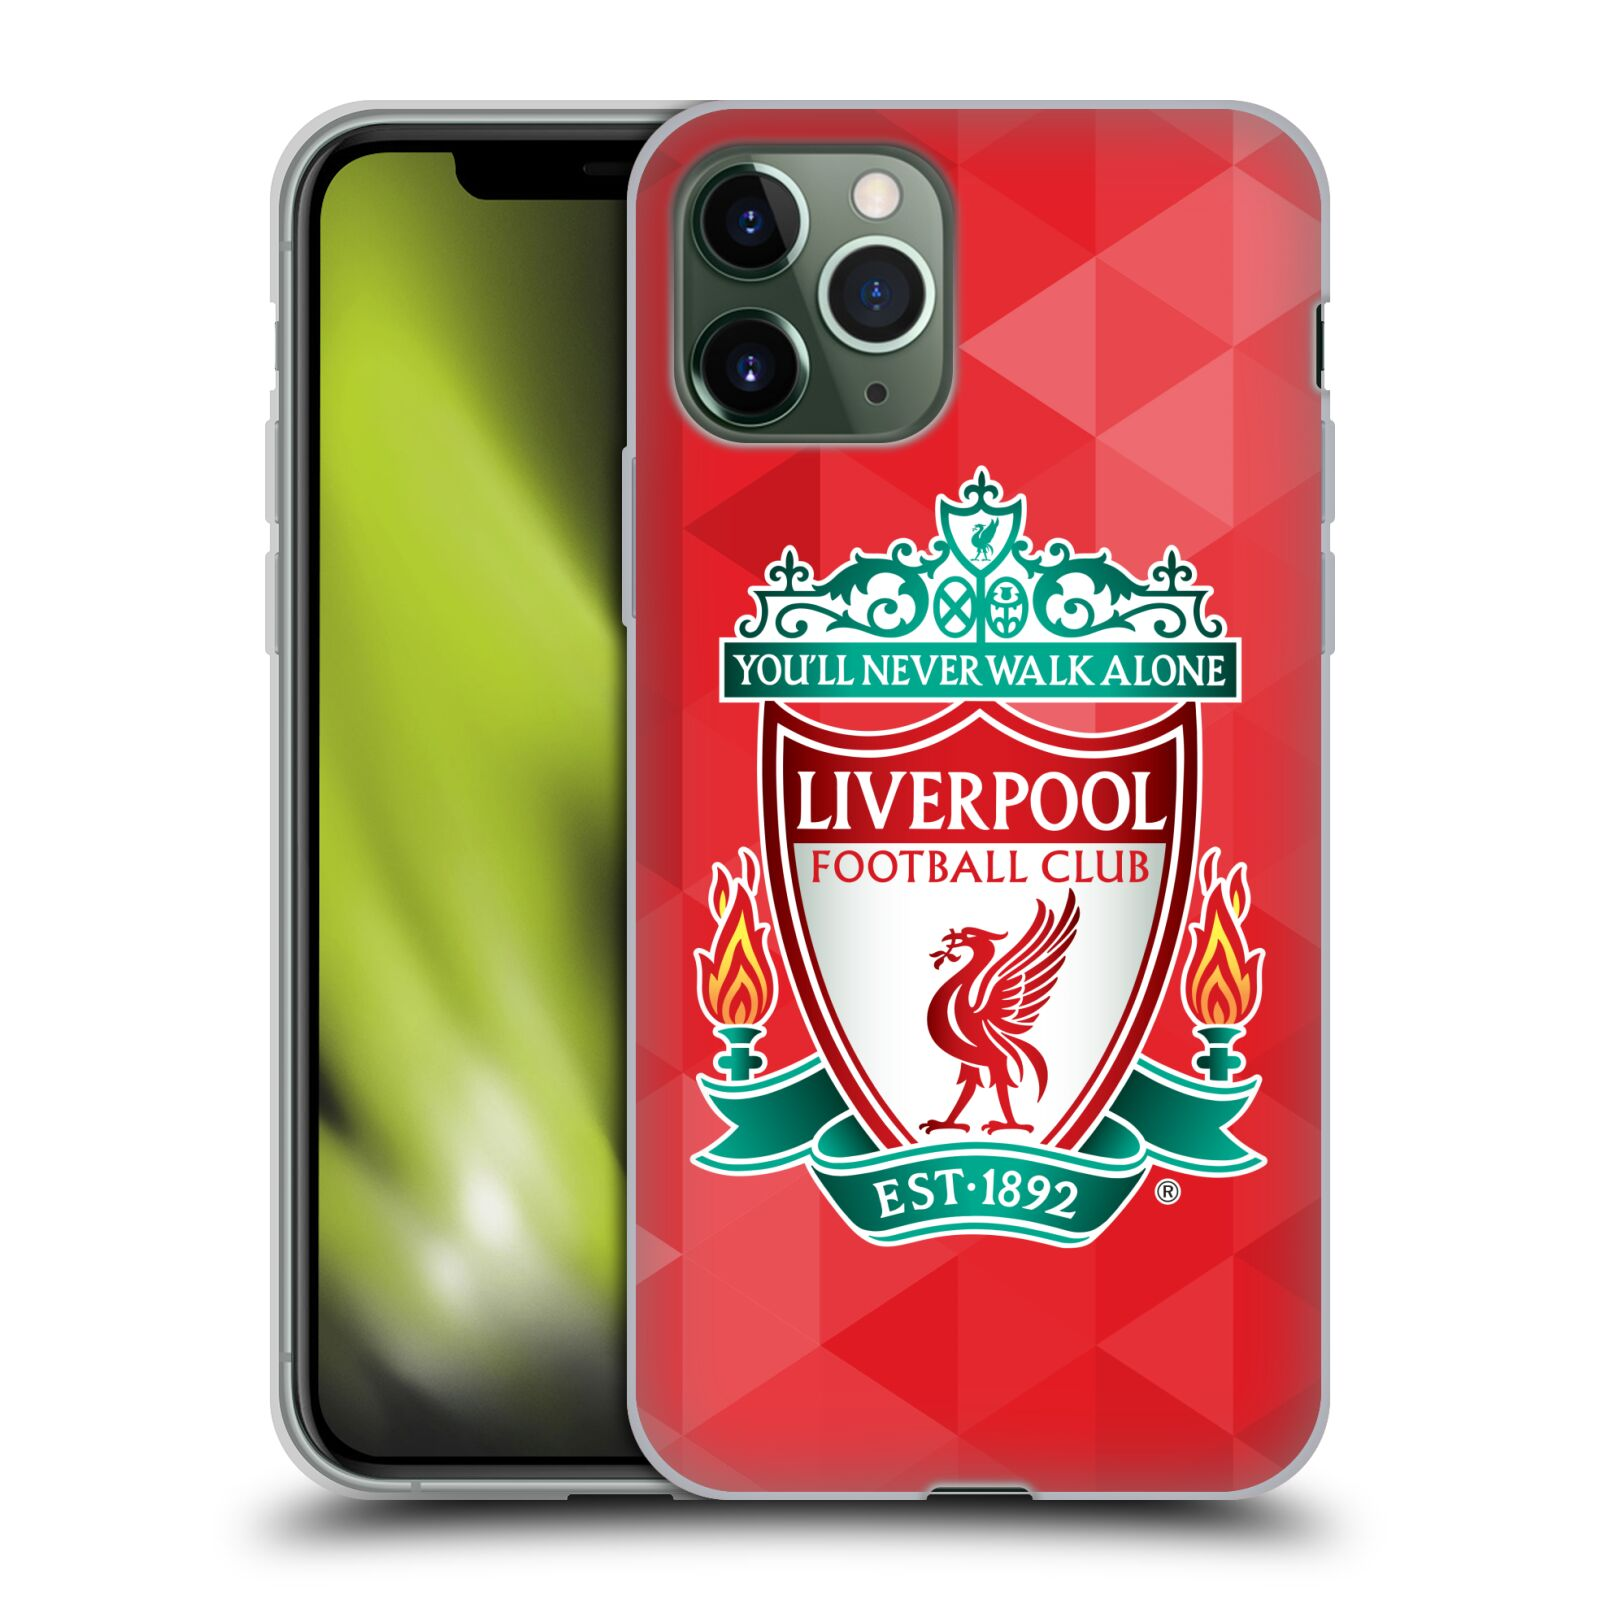 iphone xs max kryt | Silikonové pouzdro na mobil Apple iPhone 11 Pro - Head Case - ZNAK LIVERPOOL FC OFFICIAL GEOMETRIC RED